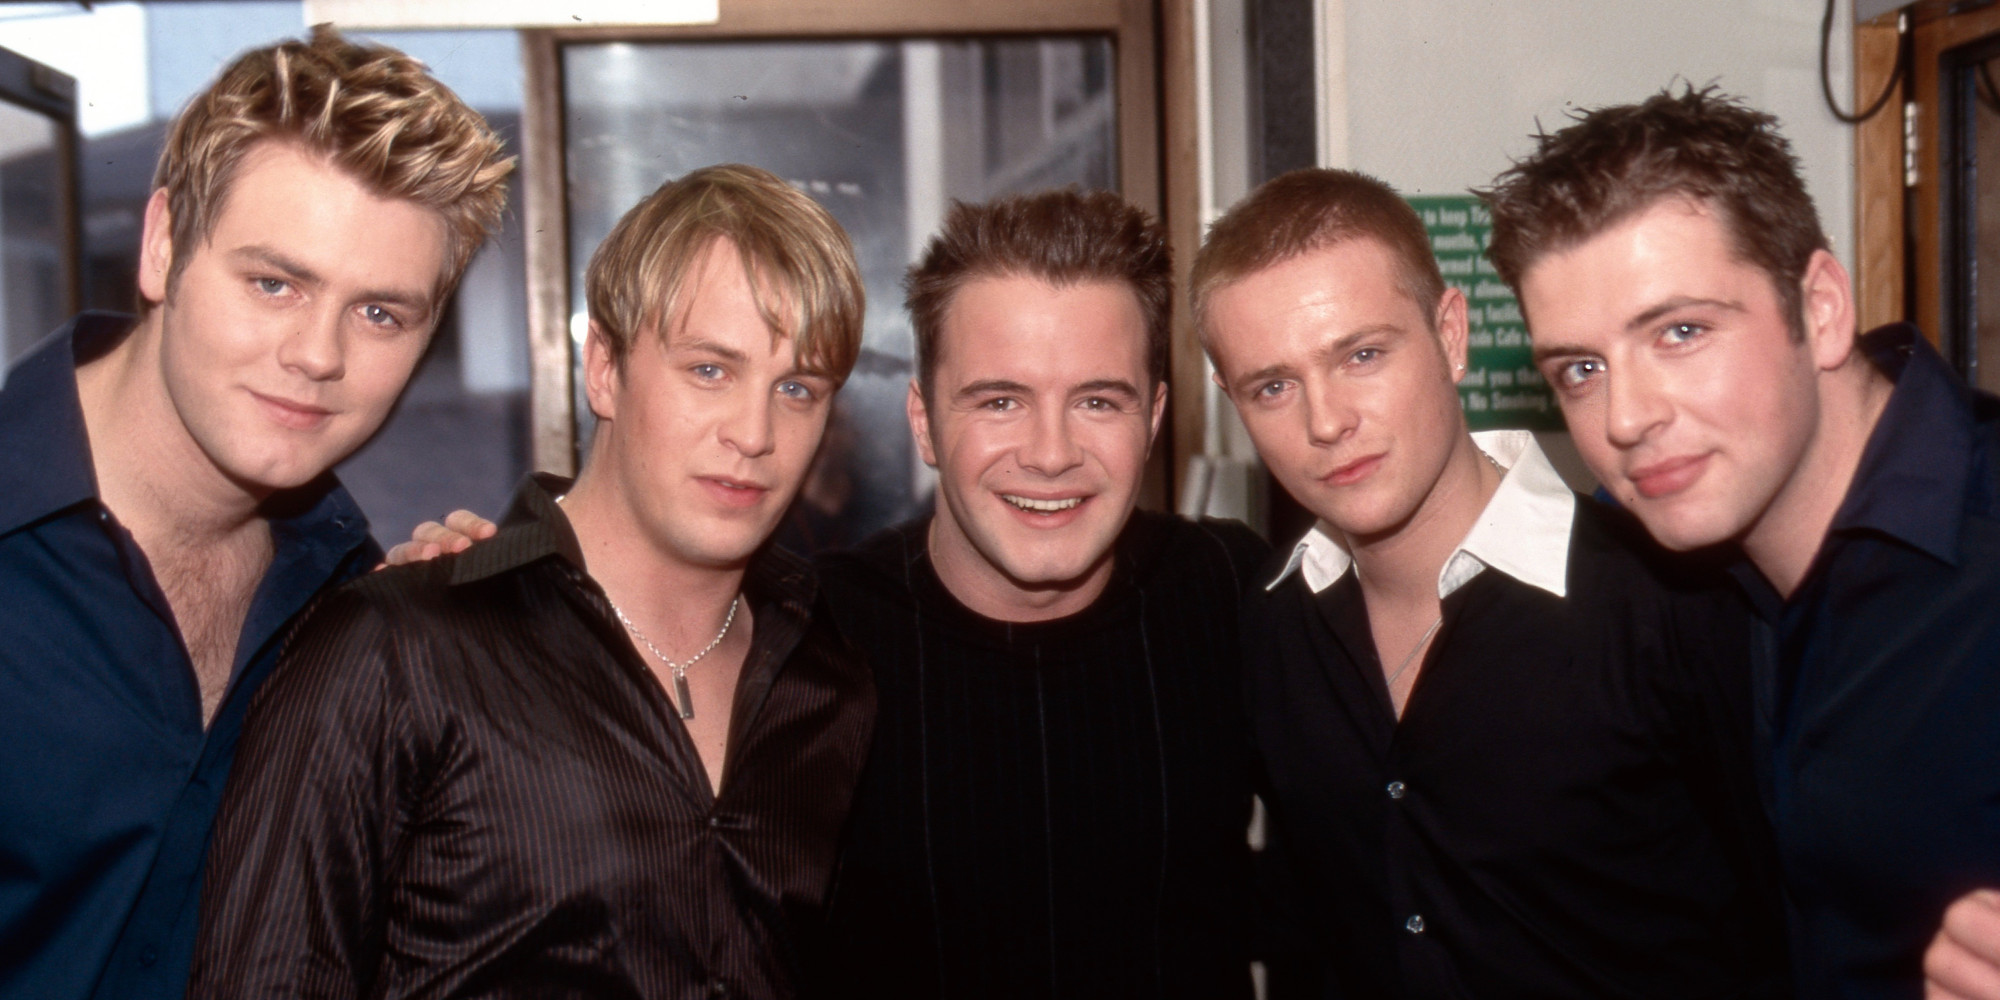 Westlife - New Songs Playlists & Latest News - BBC Music